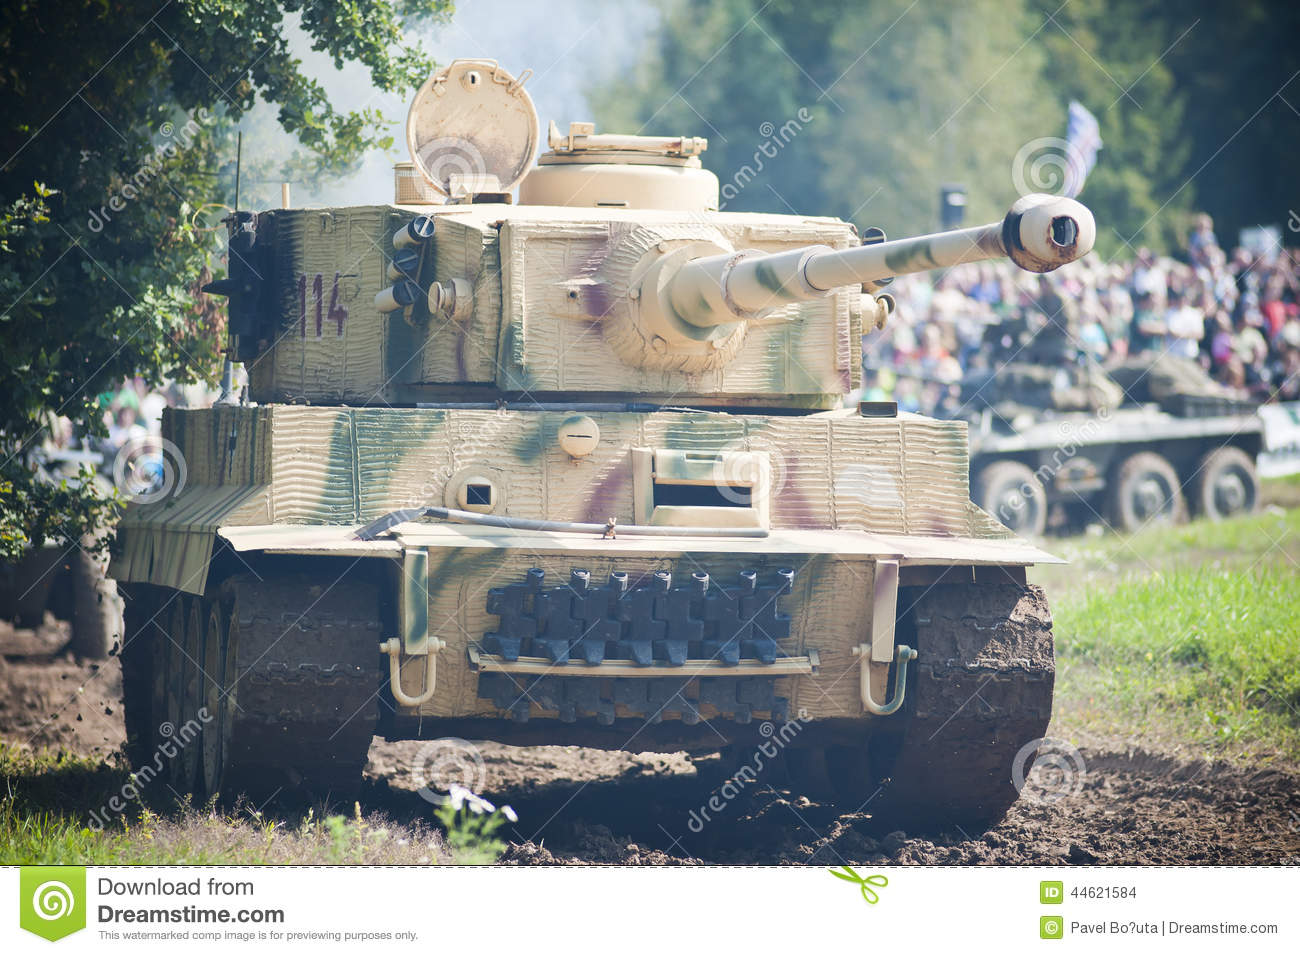 Tank tiger editorial stock image image 44621584 - Show me a picture of the tiger ...